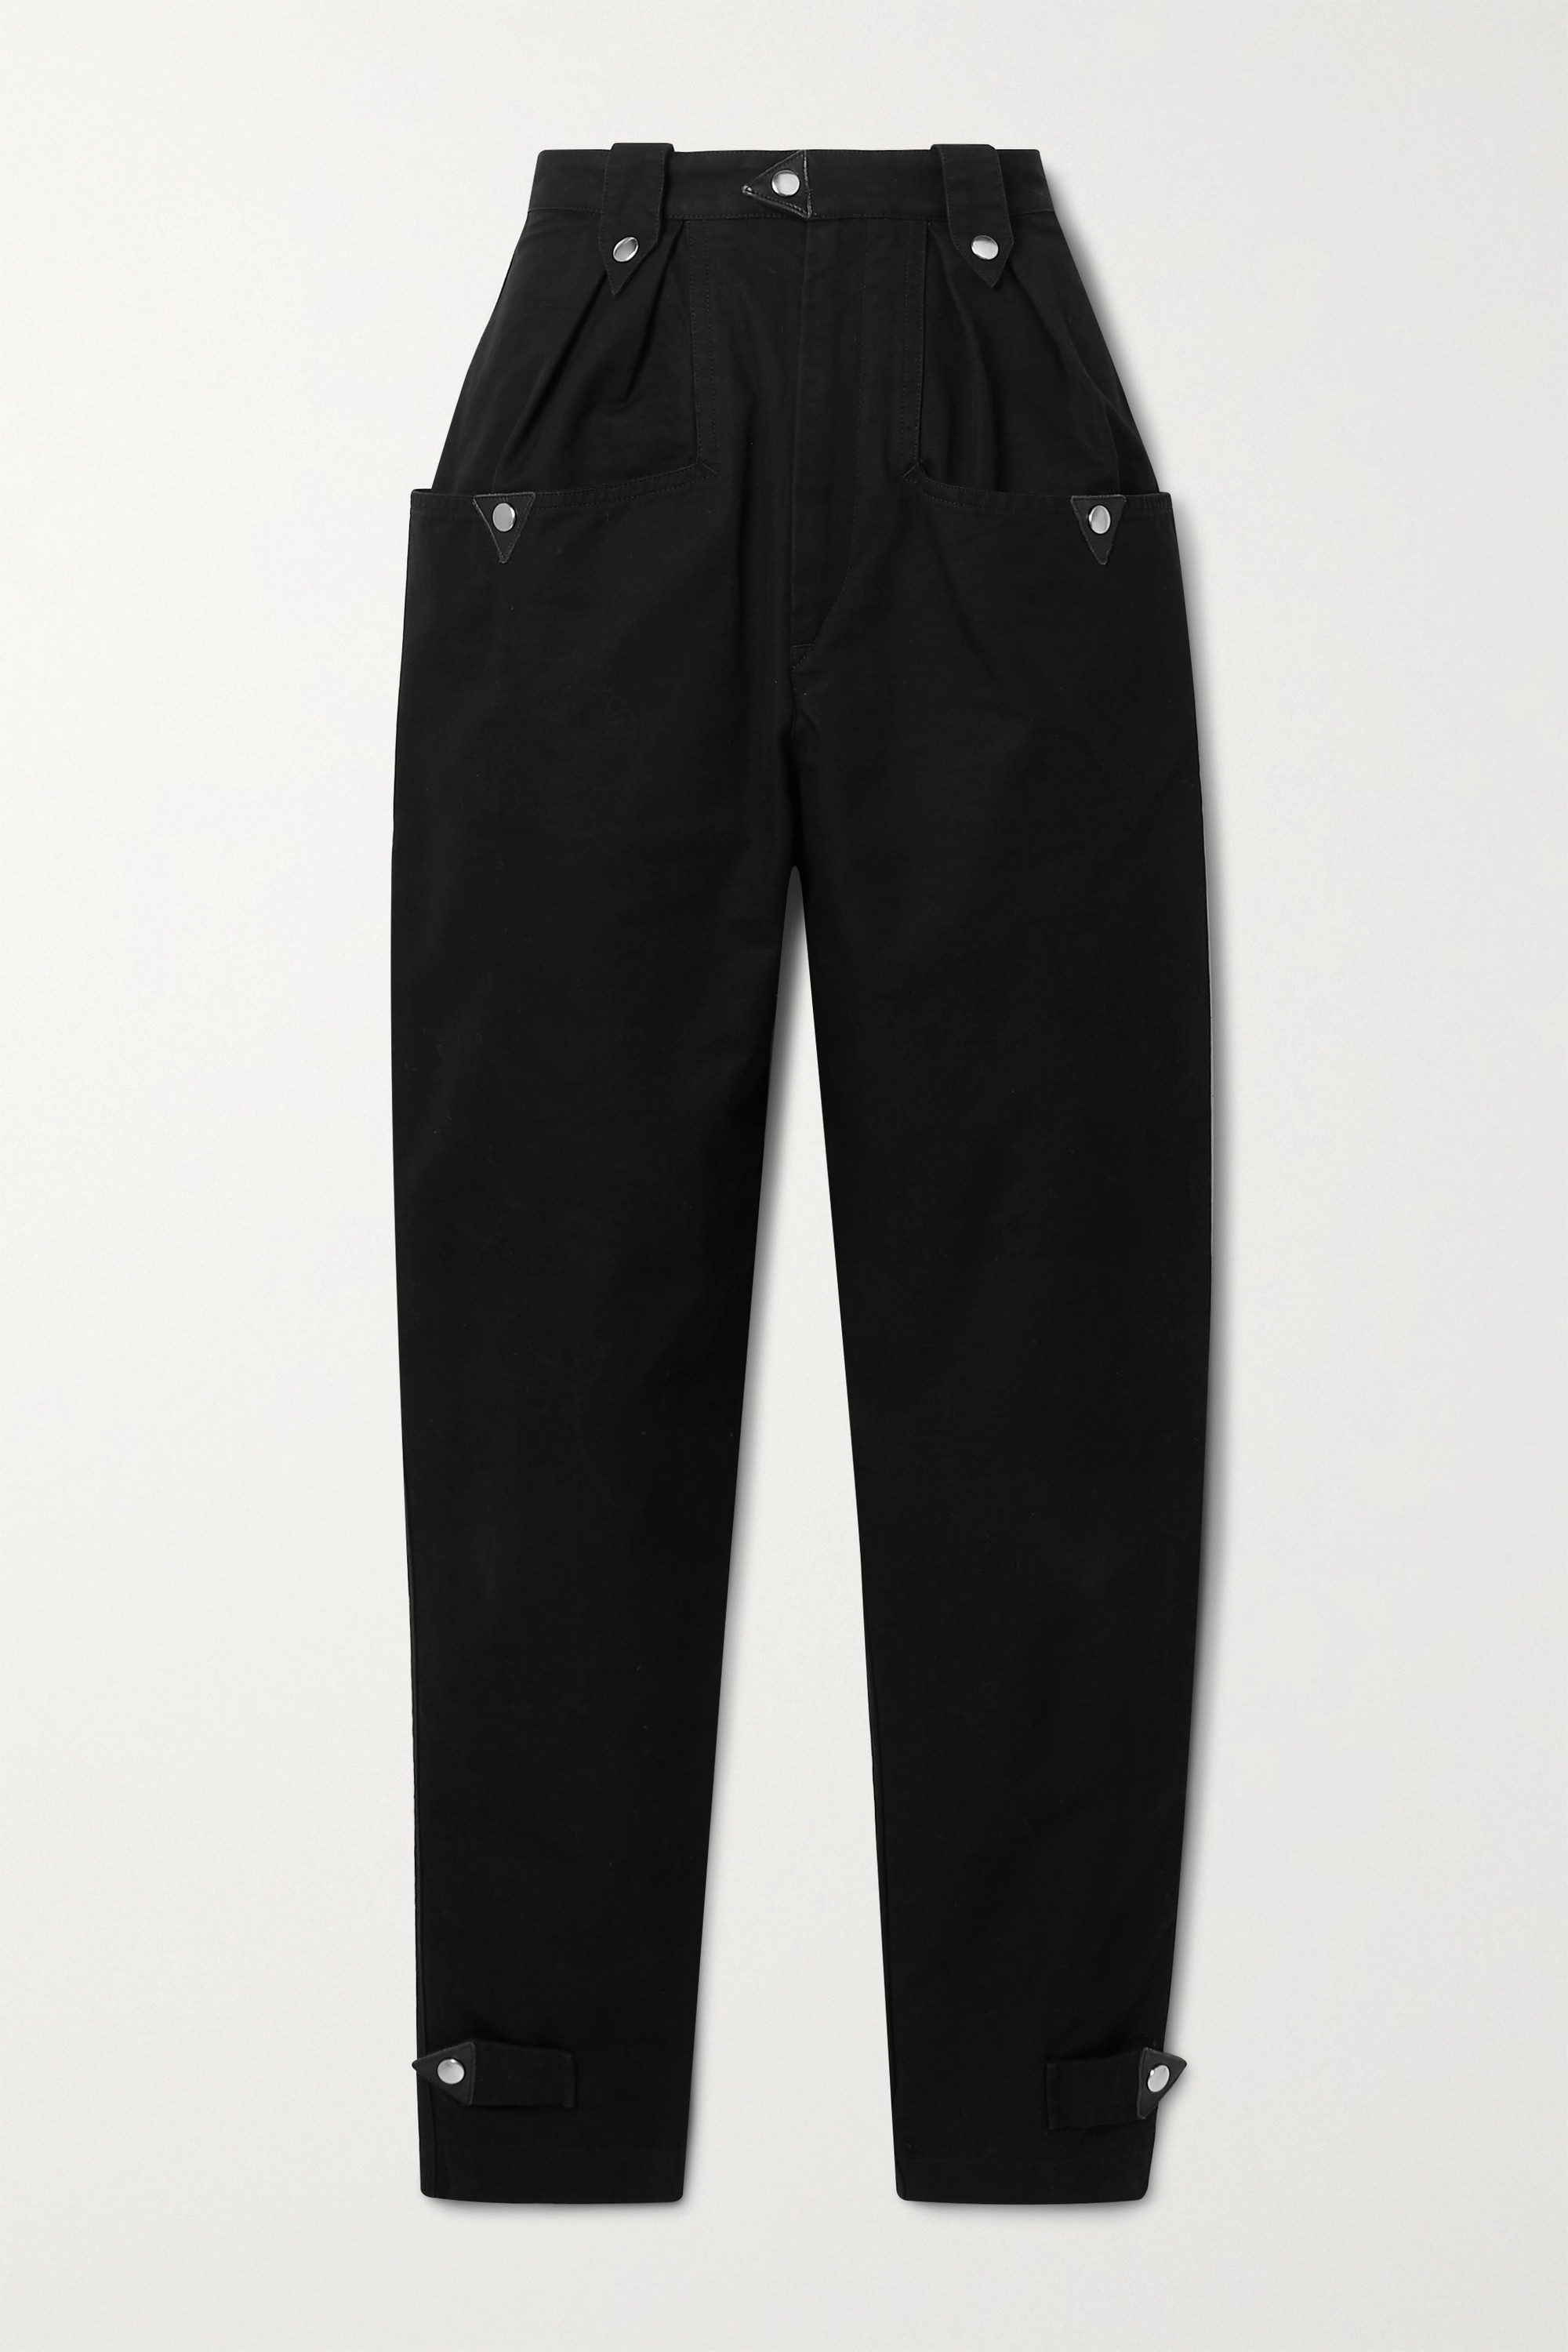 Isabel Marant Étoile Pulcie suede-trimmed cotton tapered pants